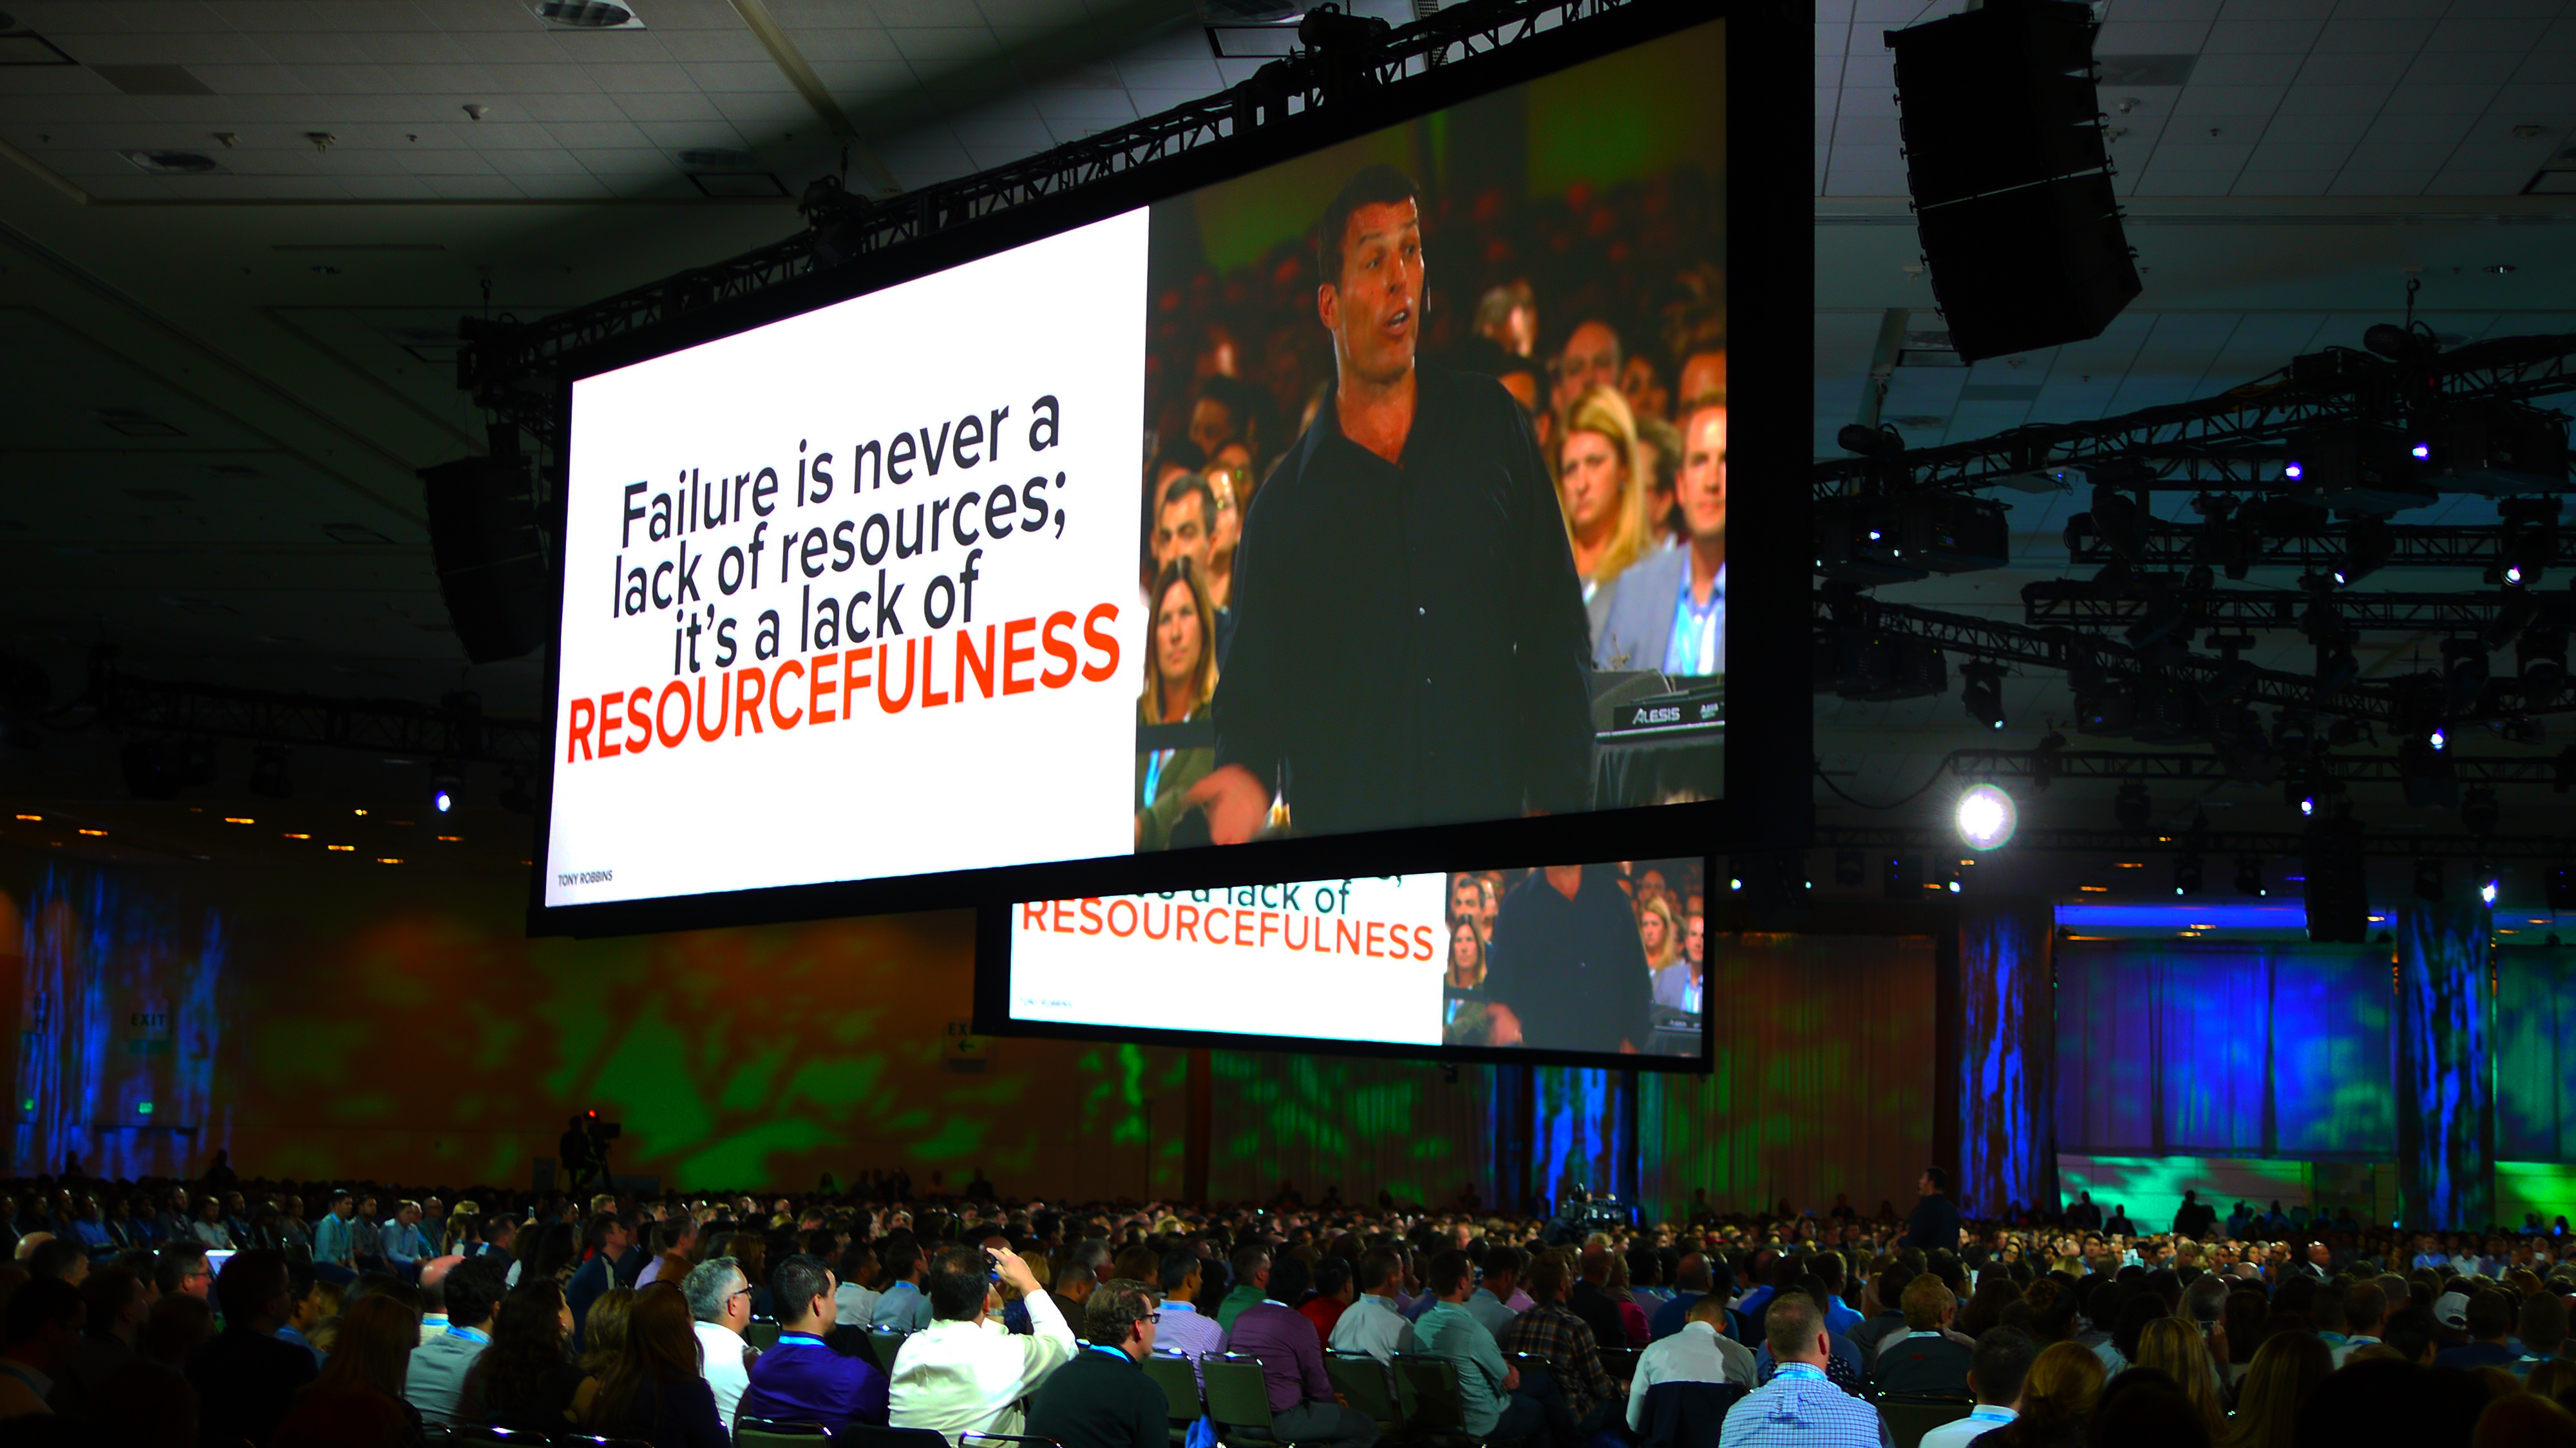 Tony Robbins delivers the keynote address at Dreamforce on Tuesday, Oct. 4, 2016.